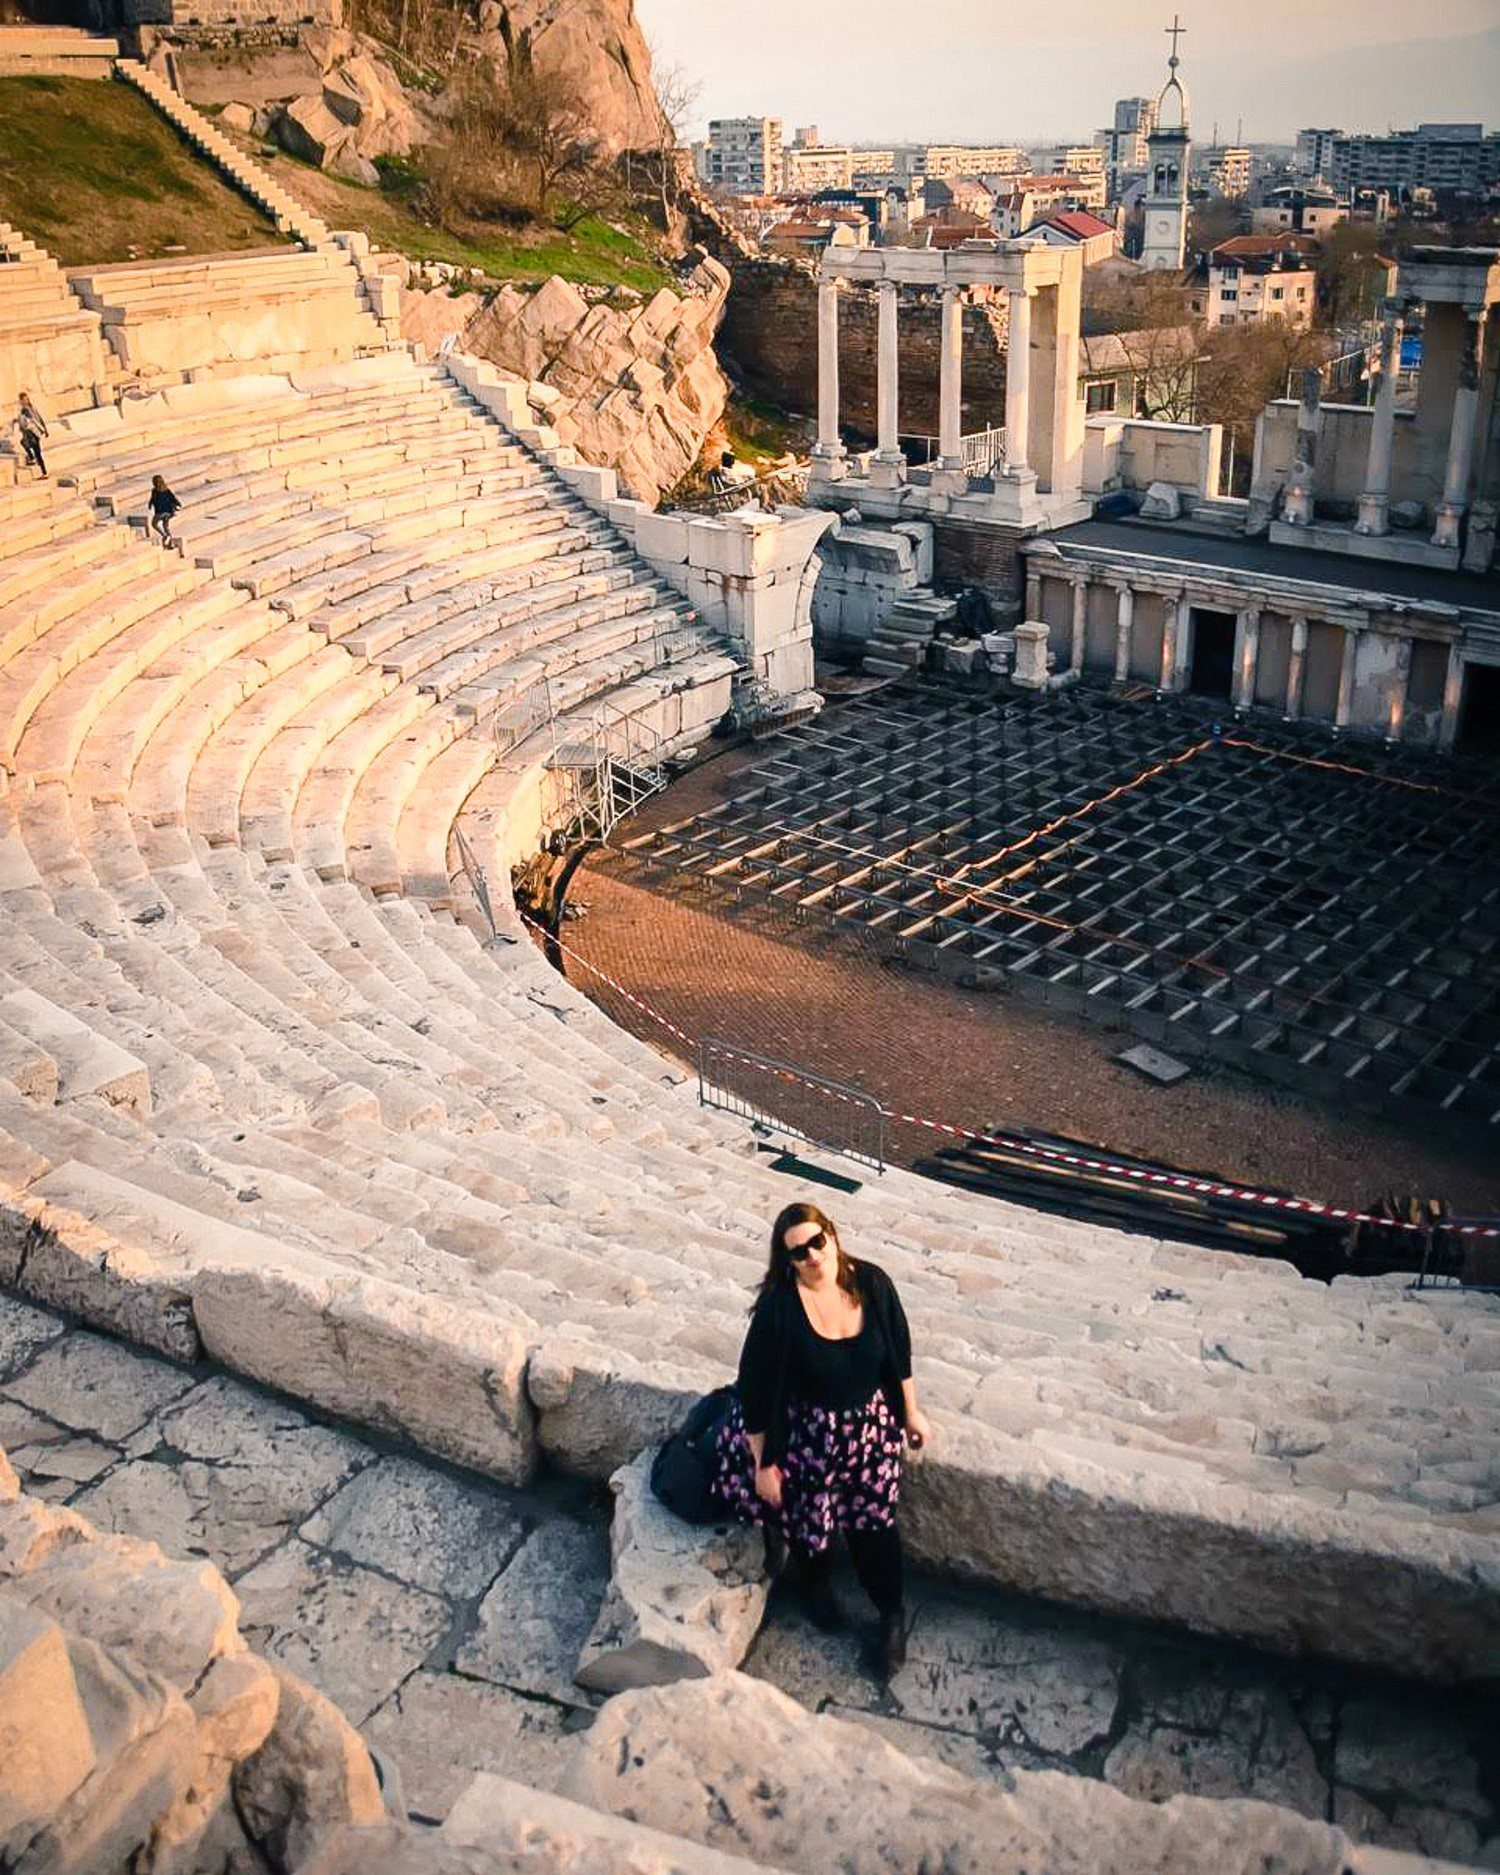 The largest and best preserved ancient Roman theater, in Plovdiv, Bulgaria.